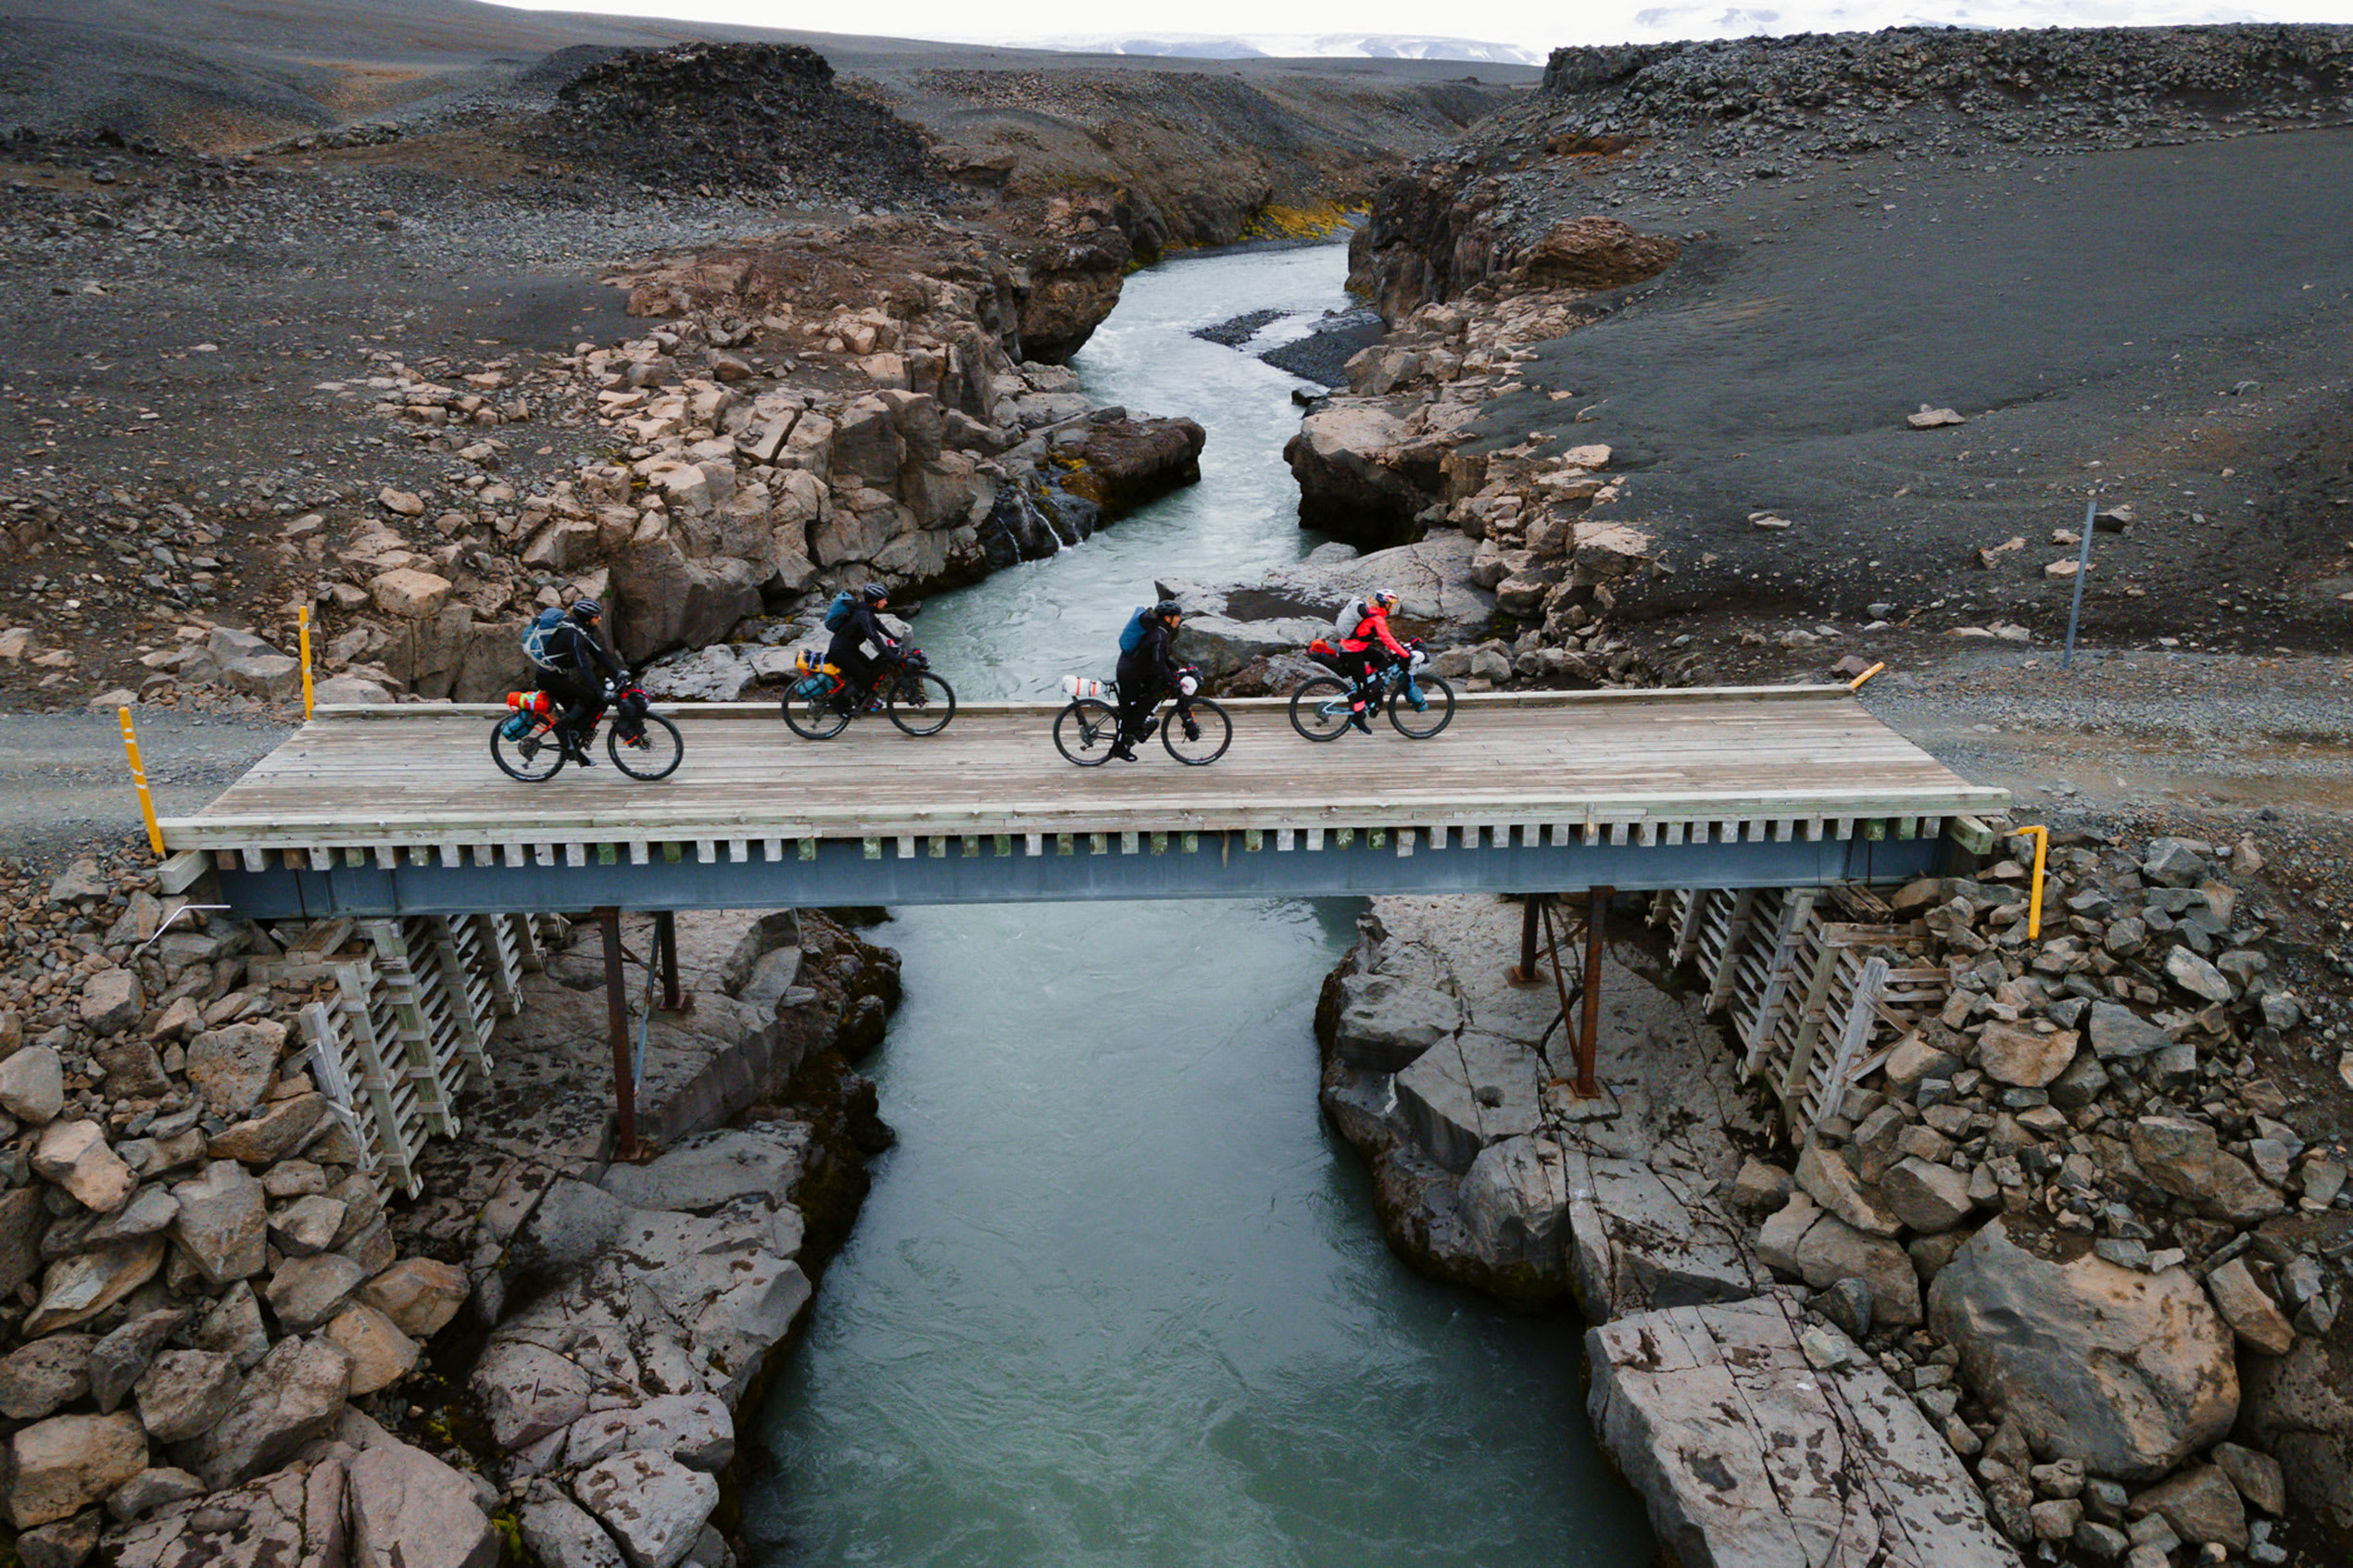 a group of four cyclists bikepacking their way through Iceland, crossing a bride over a river